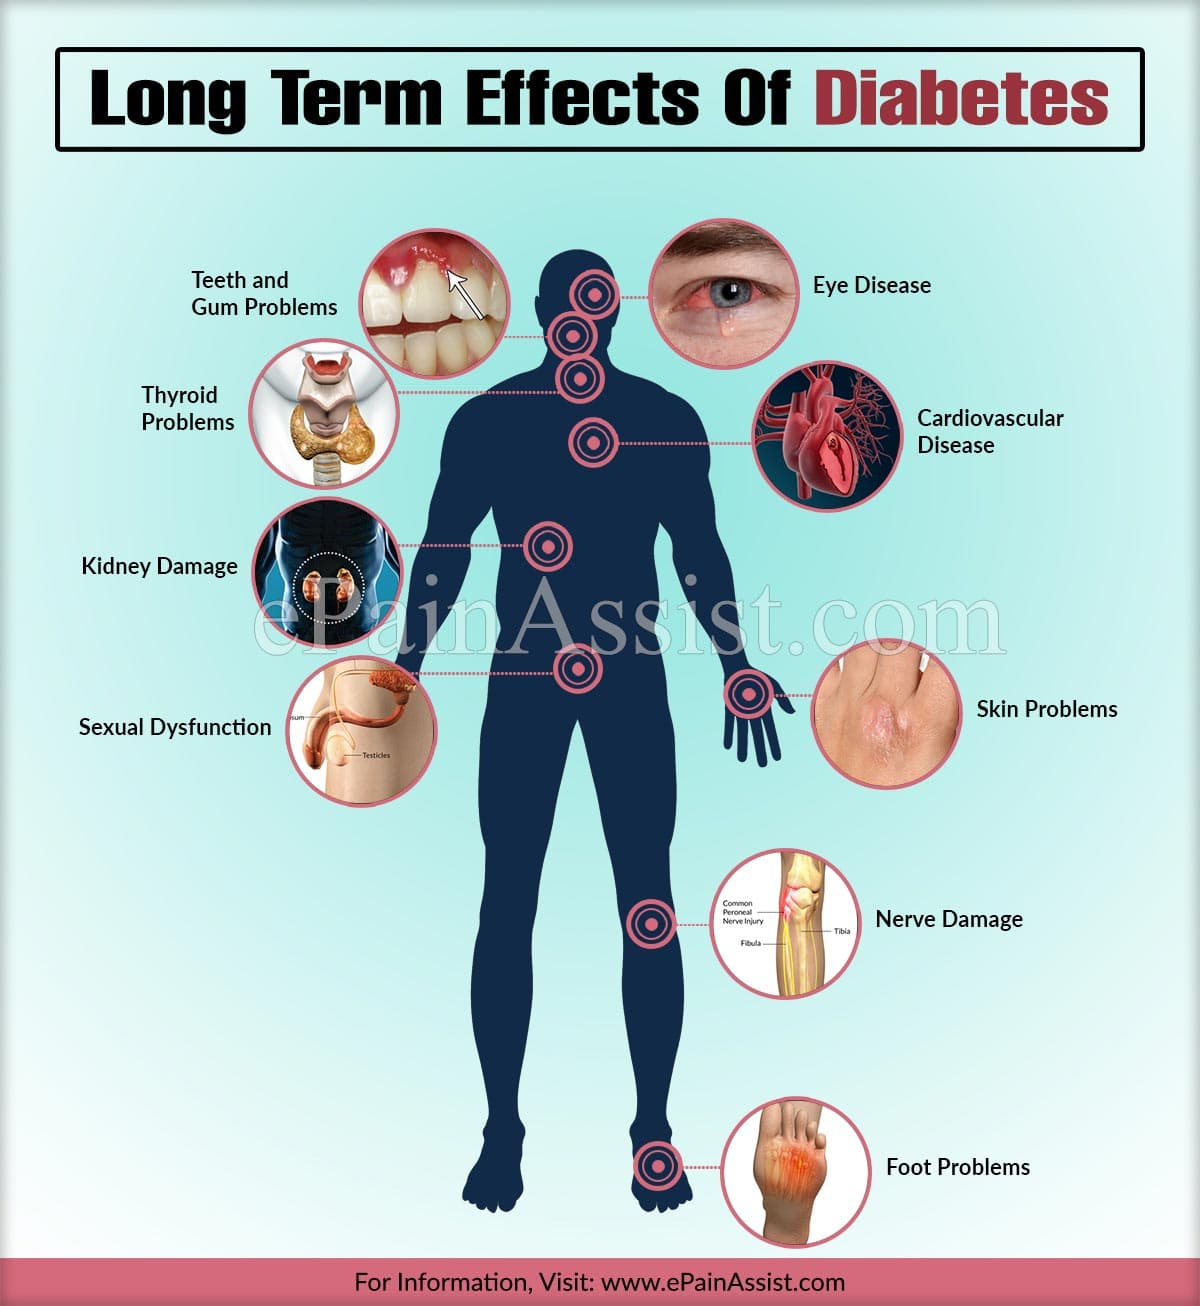 Long Term Effects Of Diabetes